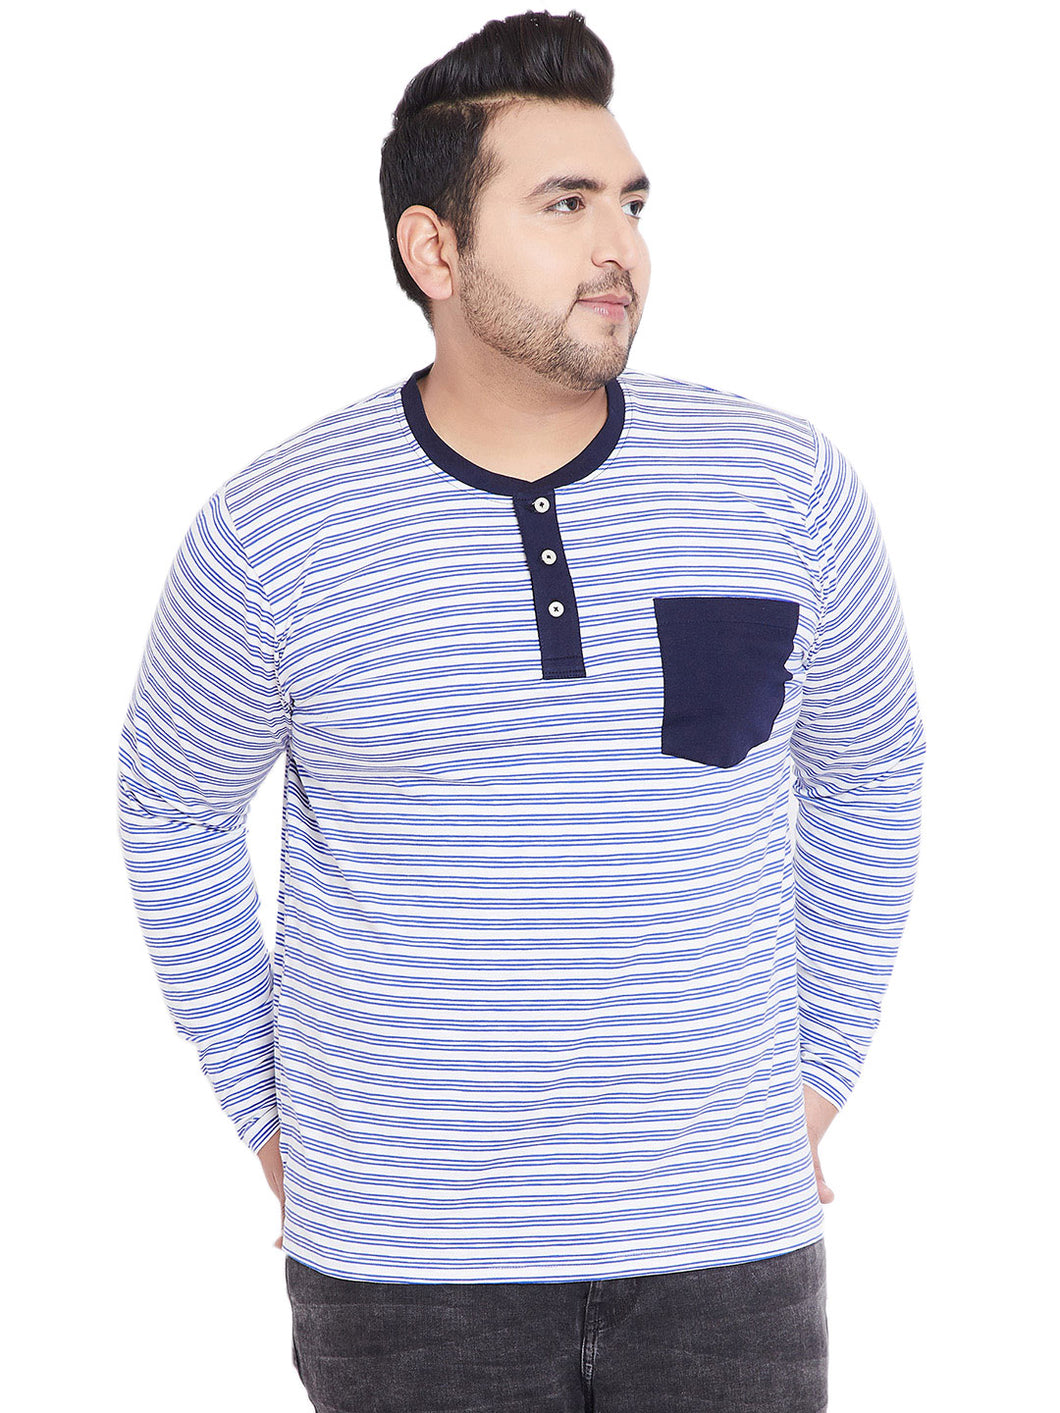 bigbanana Ackley White & Blue Striped Henley Neck T-shirt